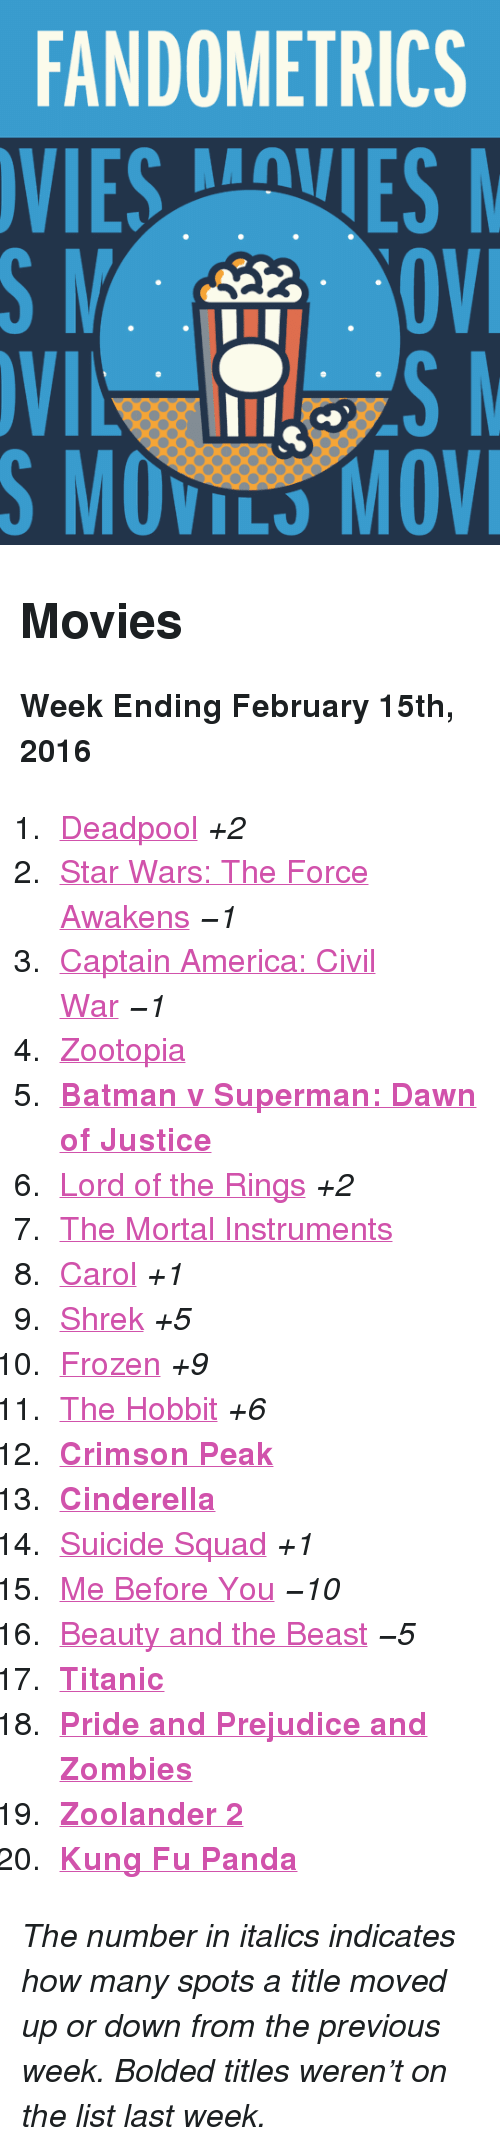 "America, Batman, and Captain America: Civil War: FANDOMETRICS  VIESVES  S MOVILS MOV <h2>Movies</h2><p><b>Week Ending February 15th, 2016</b></p><ol><li><a href=""http://www.tumblr.com/search/deadpool"">Deadpool</a> <i>+2</i></li>  <li><a href=""http://www.tumblr.com/search/star%20wars:%20the%20force%20awakens"">Star Wars: The Force Awakens</a> <i>−1</i></li>  <li><a href=""http://www.tumblr.com/search/captain%20america%20civil%20war"">Captain America: Civil War</a> <i>−1</i></li>  <li><a href=""http://www.tumblr.com/search/zootopia"">Zootopia</a></li>  <li><a href=""http://www.tumblr.com/search/batman%20v%20superman""><b>Batman v Superman: Dawn of Justice</b></a></li>  <li><a href=""http://www.tumblr.com/search/lotr"">Lord of the Rings</a> <i>+2</i></li>  <li><a href=""http://www.tumblr.com/search/the%20mortal%20instruments"">The Mortal Instruments</a></li>  <li><a href=""http://www.tumblr.com/search/carol"">Carol</a> <i>+1</i></li>  <li><a href=""http://www.tumblr.com/search/shrek"">Shrek</a> <i>+5</i></li>  <li><a href=""http://www.tumblr.com/search/frozen"">Frozen</a> <i>+9</i></li>  <li><a href=""http://www.tumblr.com/search/the%20hobbit"">The Hobbit</a> <i>+6</i></li>  <li><a href=""http://www.tumblr.com/search/crimson%20peak""><b>Crimson Peak</b></a> </li>  <li><a href=""http://www.tumblr.com/search/cinderella""><b>Cinderella</b></a></li>  <li><a href=""http://www.tumblr.com/search/suicide%20squad"">Suicide Squad</a> <i>+1</i></li>  <li><a href=""http://www.tumblr.com/search/me%20before%20you"">Me Before You</a> <i>−10</i></li>  <li><a href=""http://www.tumblr.com/search/beauty%20and%20the%20beast"">Beauty and the Beast</a> <i>−5</i></li>  <li><a href=""http://www.tumblr.com/search/titanic""><b>Titanic</b></a></li>  <li><a href=""http://www.tumblr.com/search/pride%20and%20prejudice%20and%20zombies""><b>Pride and Prejudice and Zombies</b></a></li>  <li><a href=""http://www.tumblr.com/search/zoolander%202""><b>Zoolander 2</b></a></li>  <li><a href=""http://www.tumblr.com/search/kung%20fu%20panda""><b>Kung Fu Panda</b></a></li></ol><p><i>The number in italics indicates how many spots a title moved up or down from the previous week. Bolded titles weren't on the list last week.</i></p>"